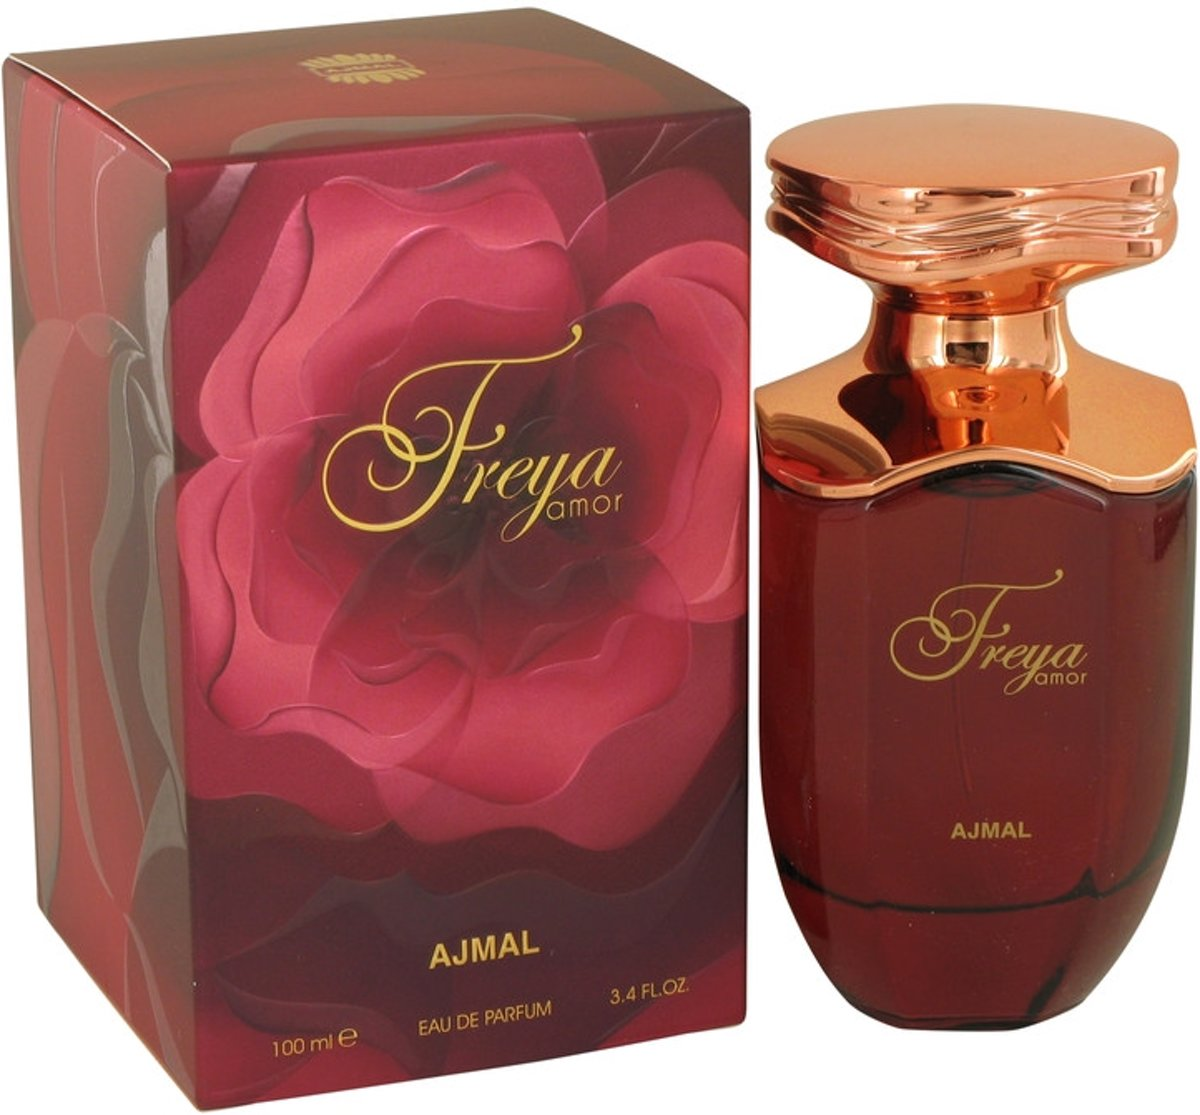 Ajmal Freya Amor eau de parfum spray 100 ml